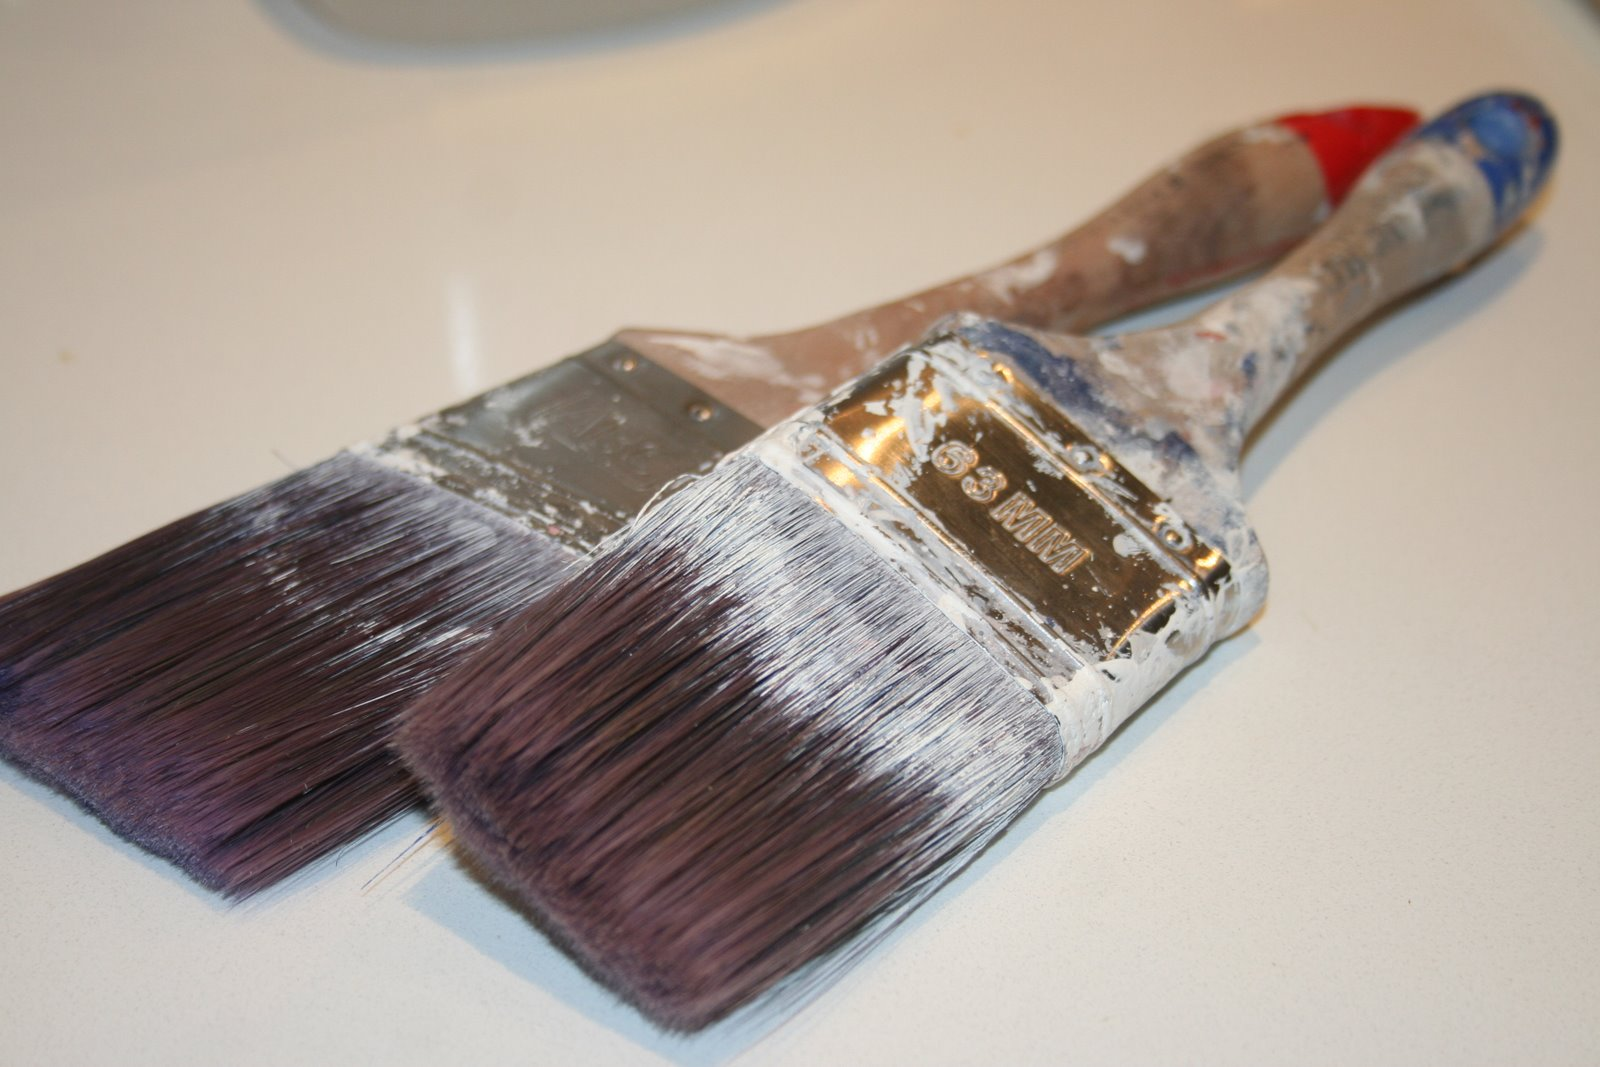 Cleaning Paint Brush And Rollers